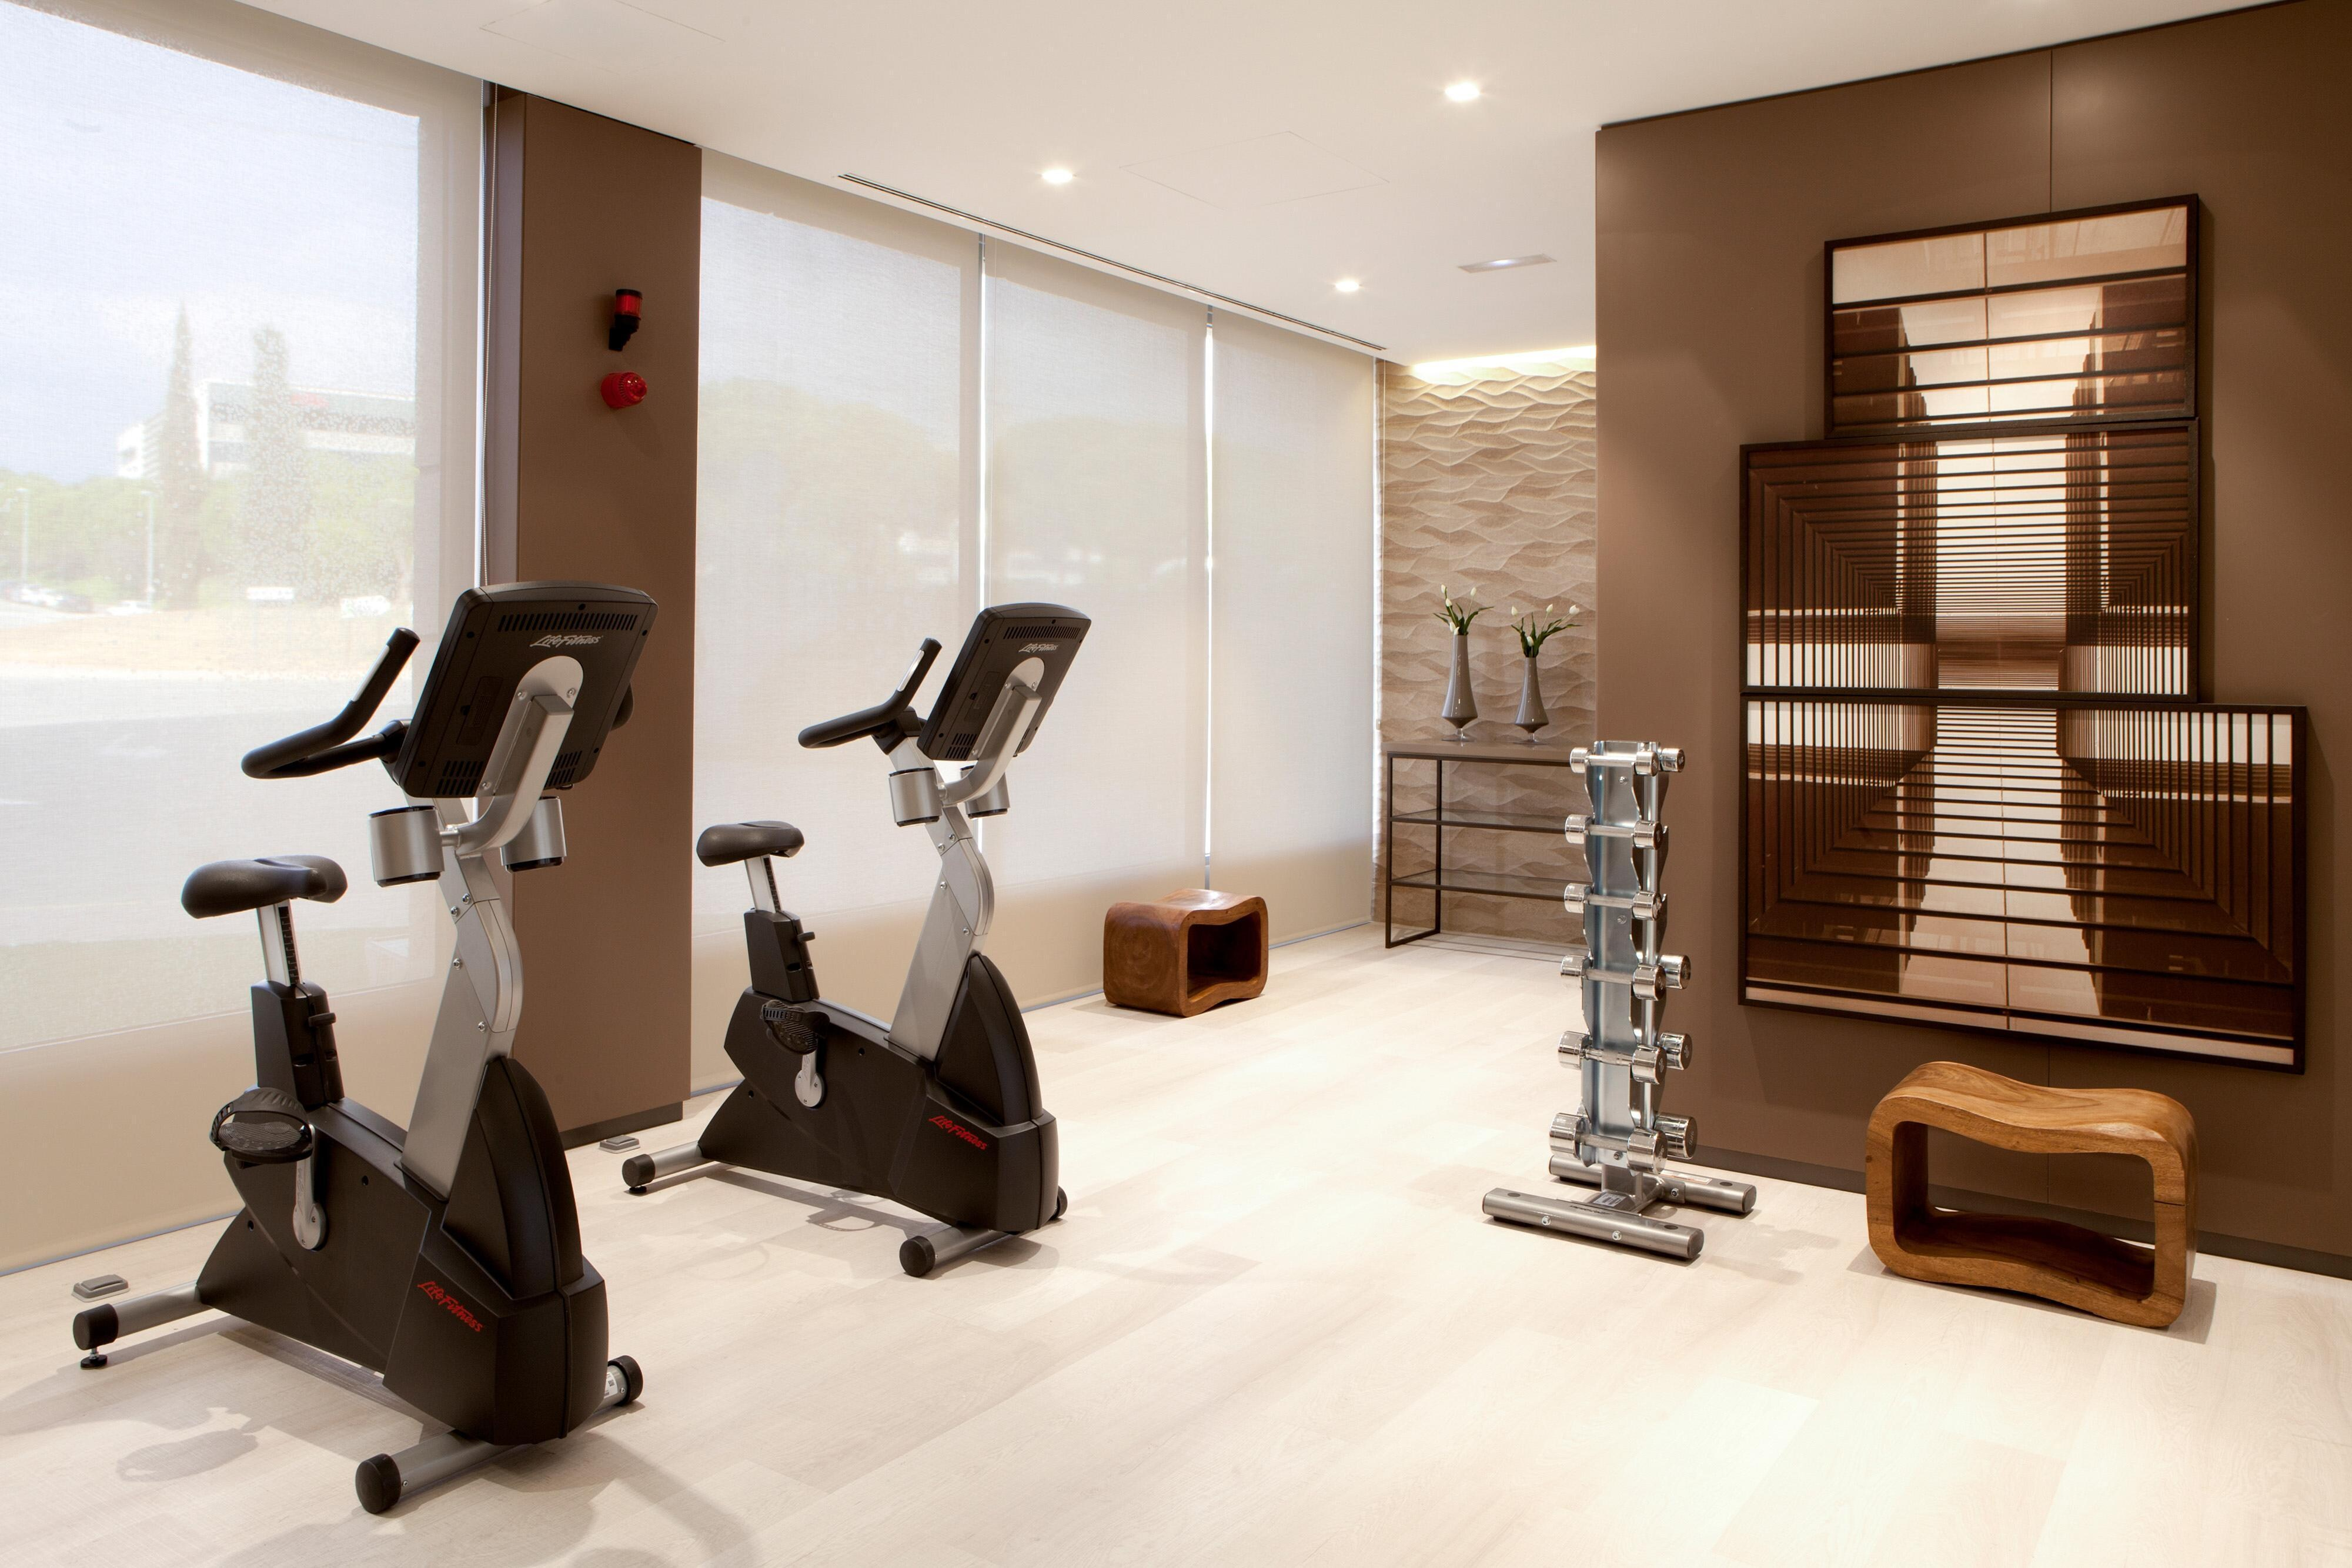 AC Hotel AC Fitness Center